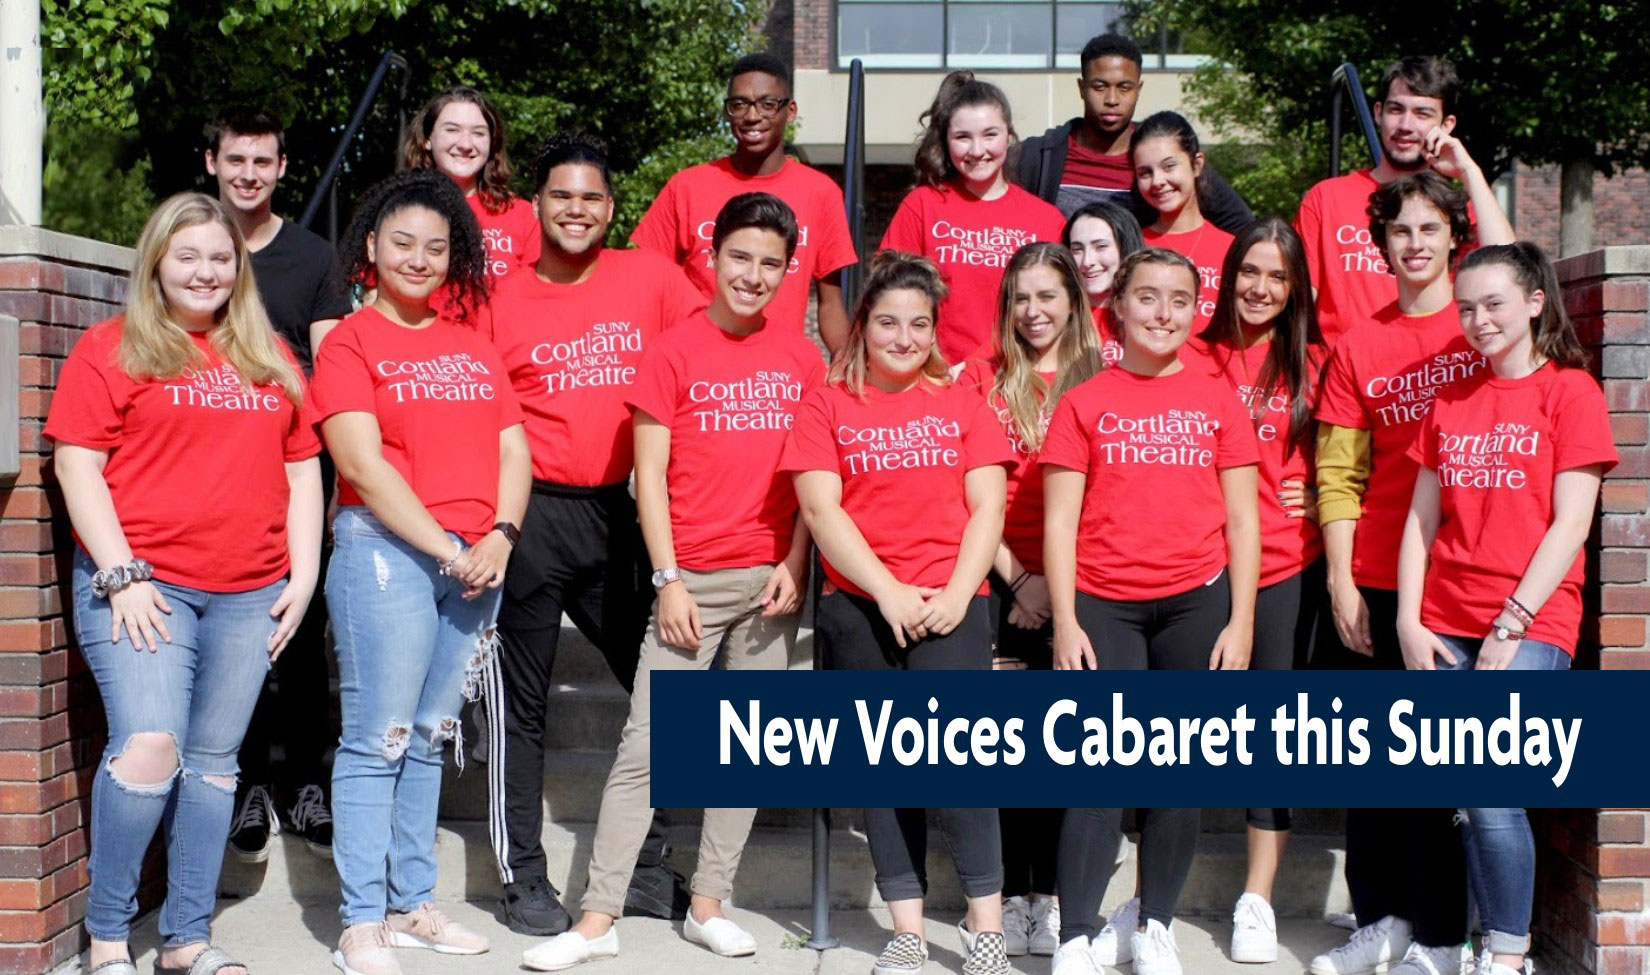 New Voices Cabaret this sunday